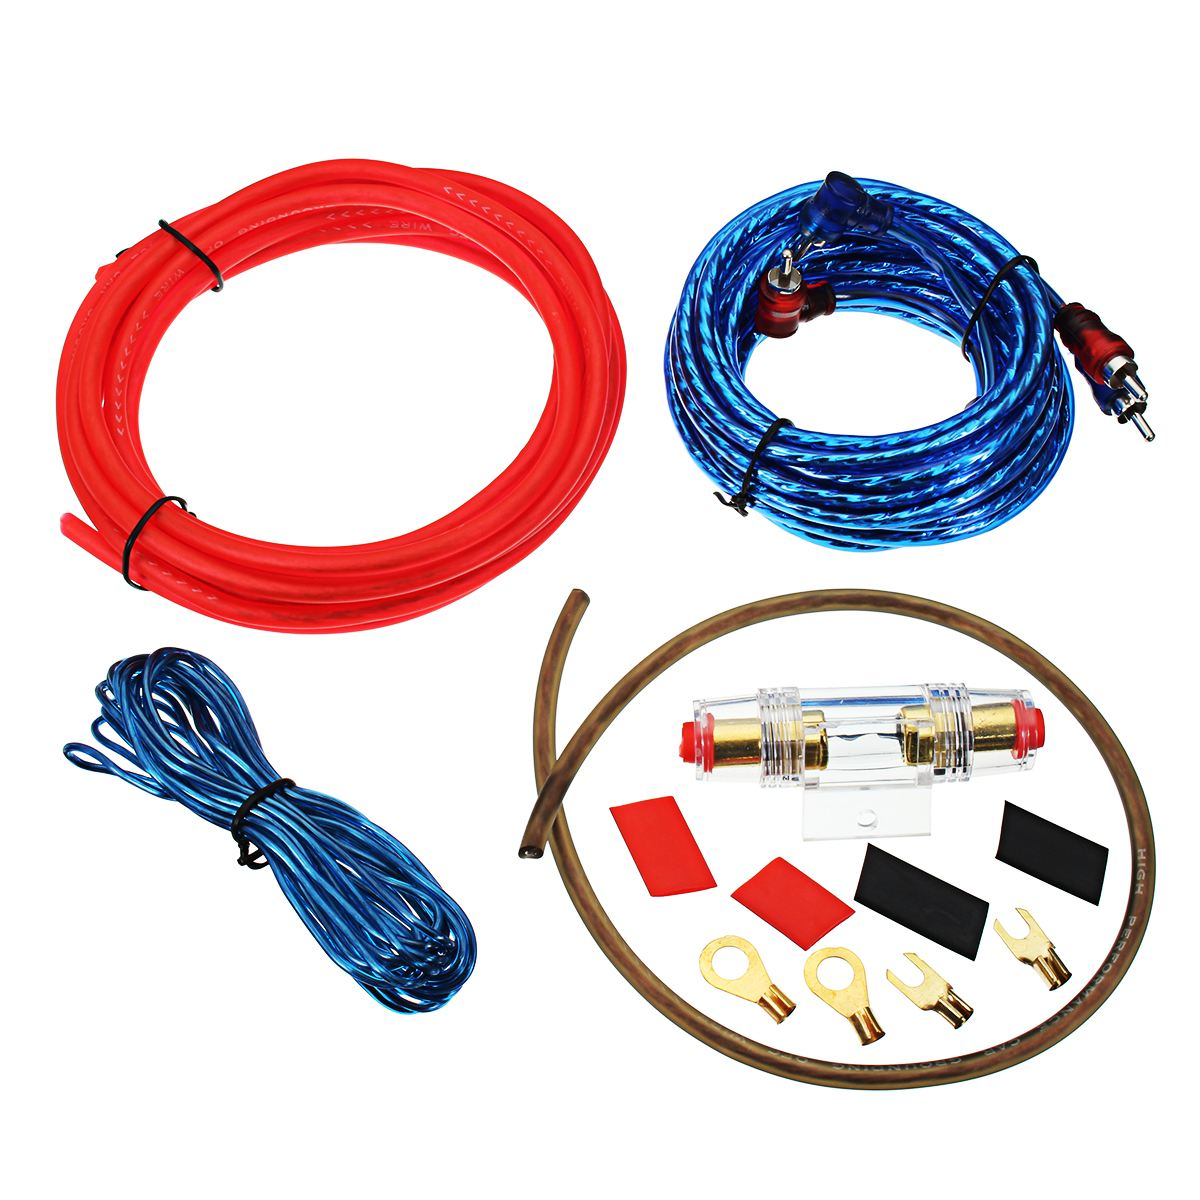 Dq New Car Auto Audio Speakers Wiring Kits 4ga Power Cable Amplifier Automobile Radio Cable1500w 8ga Subwoofer Amp Fuse Holder Wire Kit